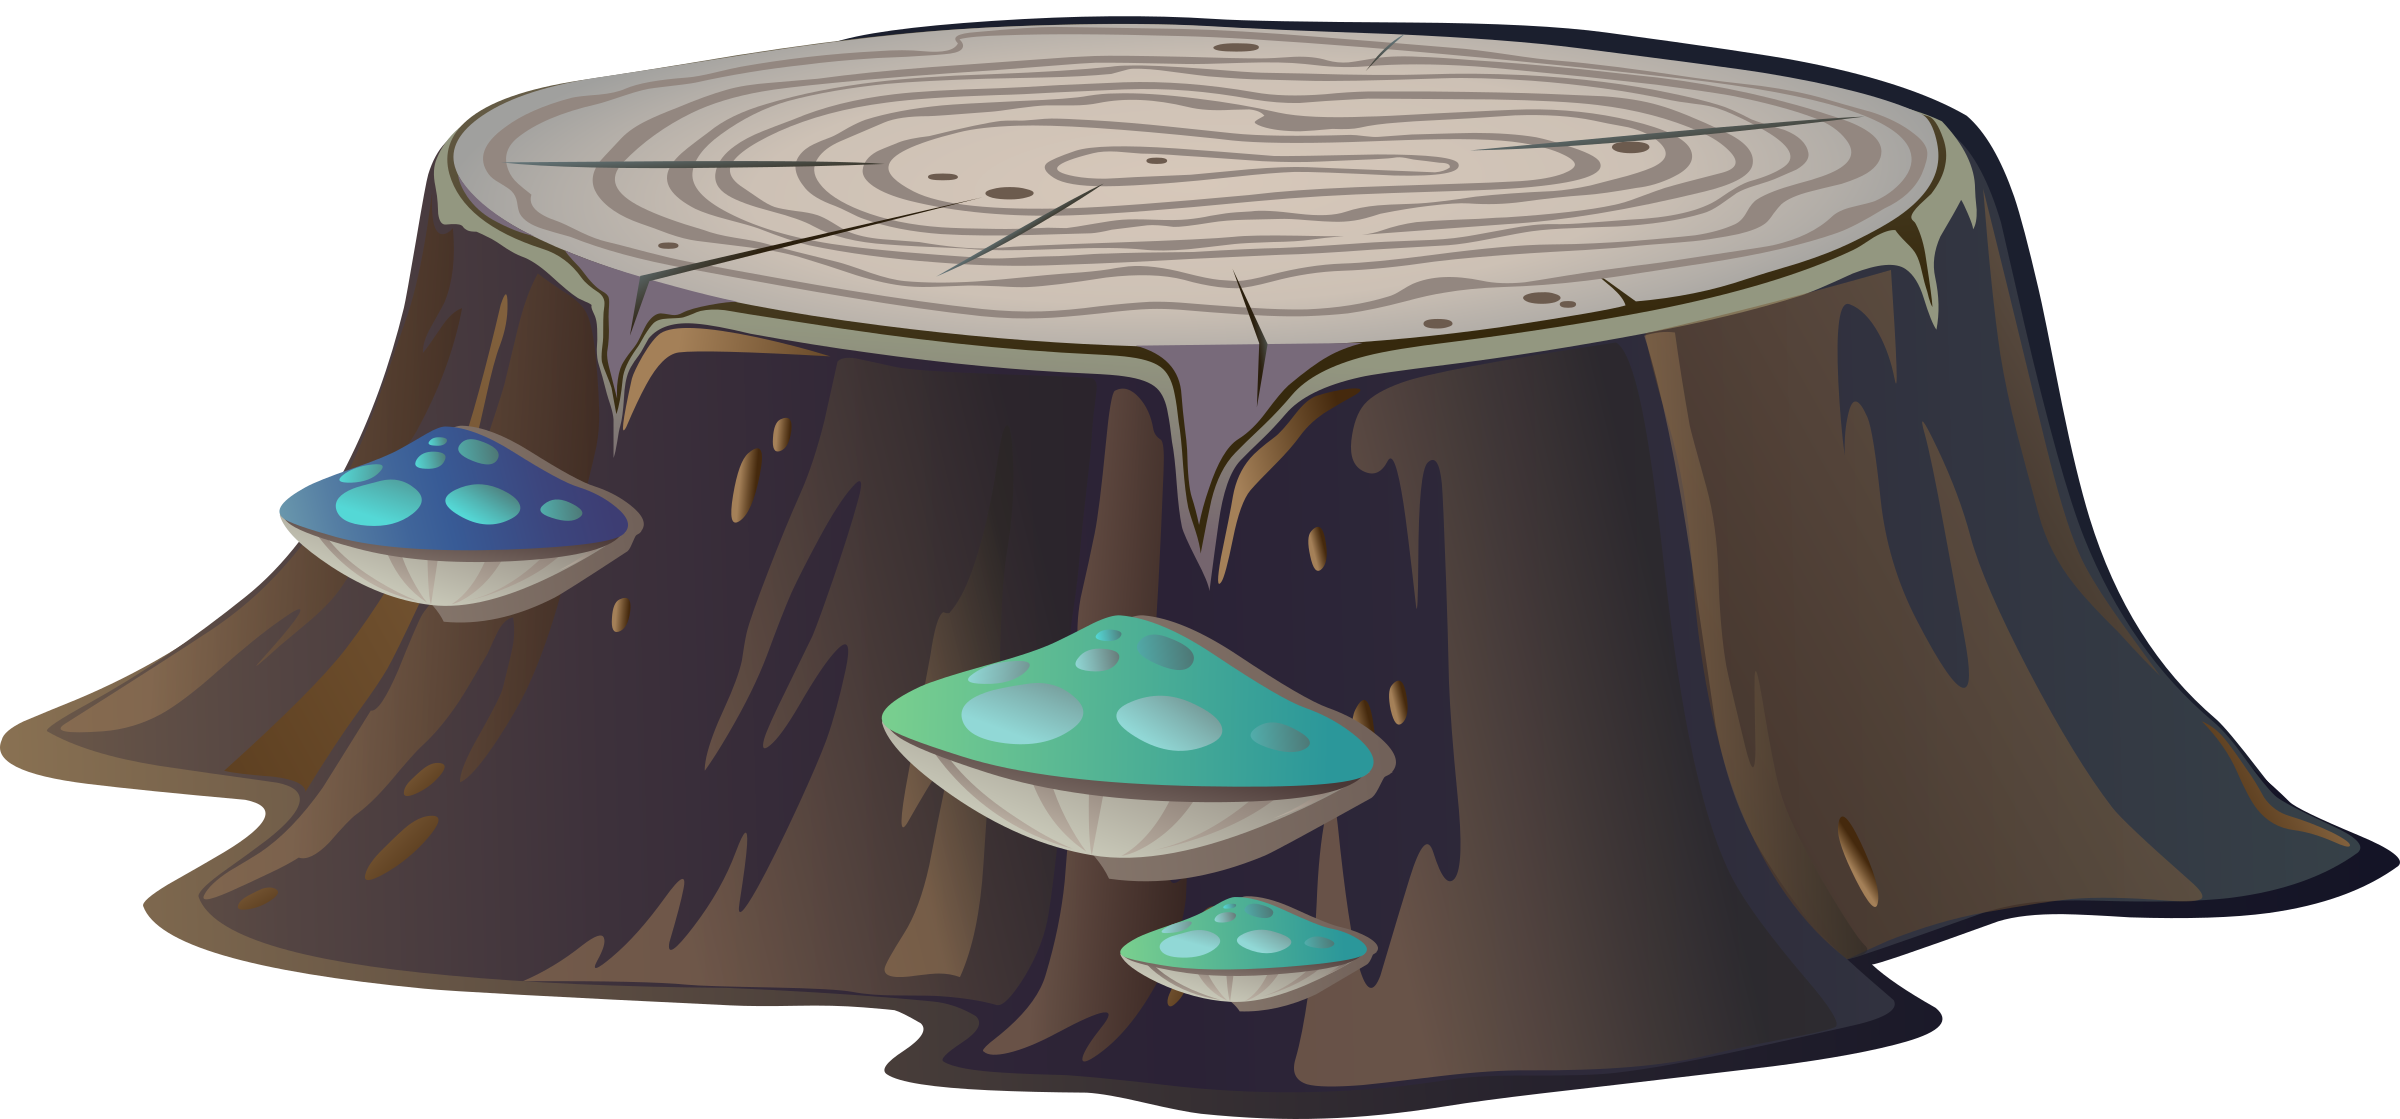 Tree stump from Glitch by anarres